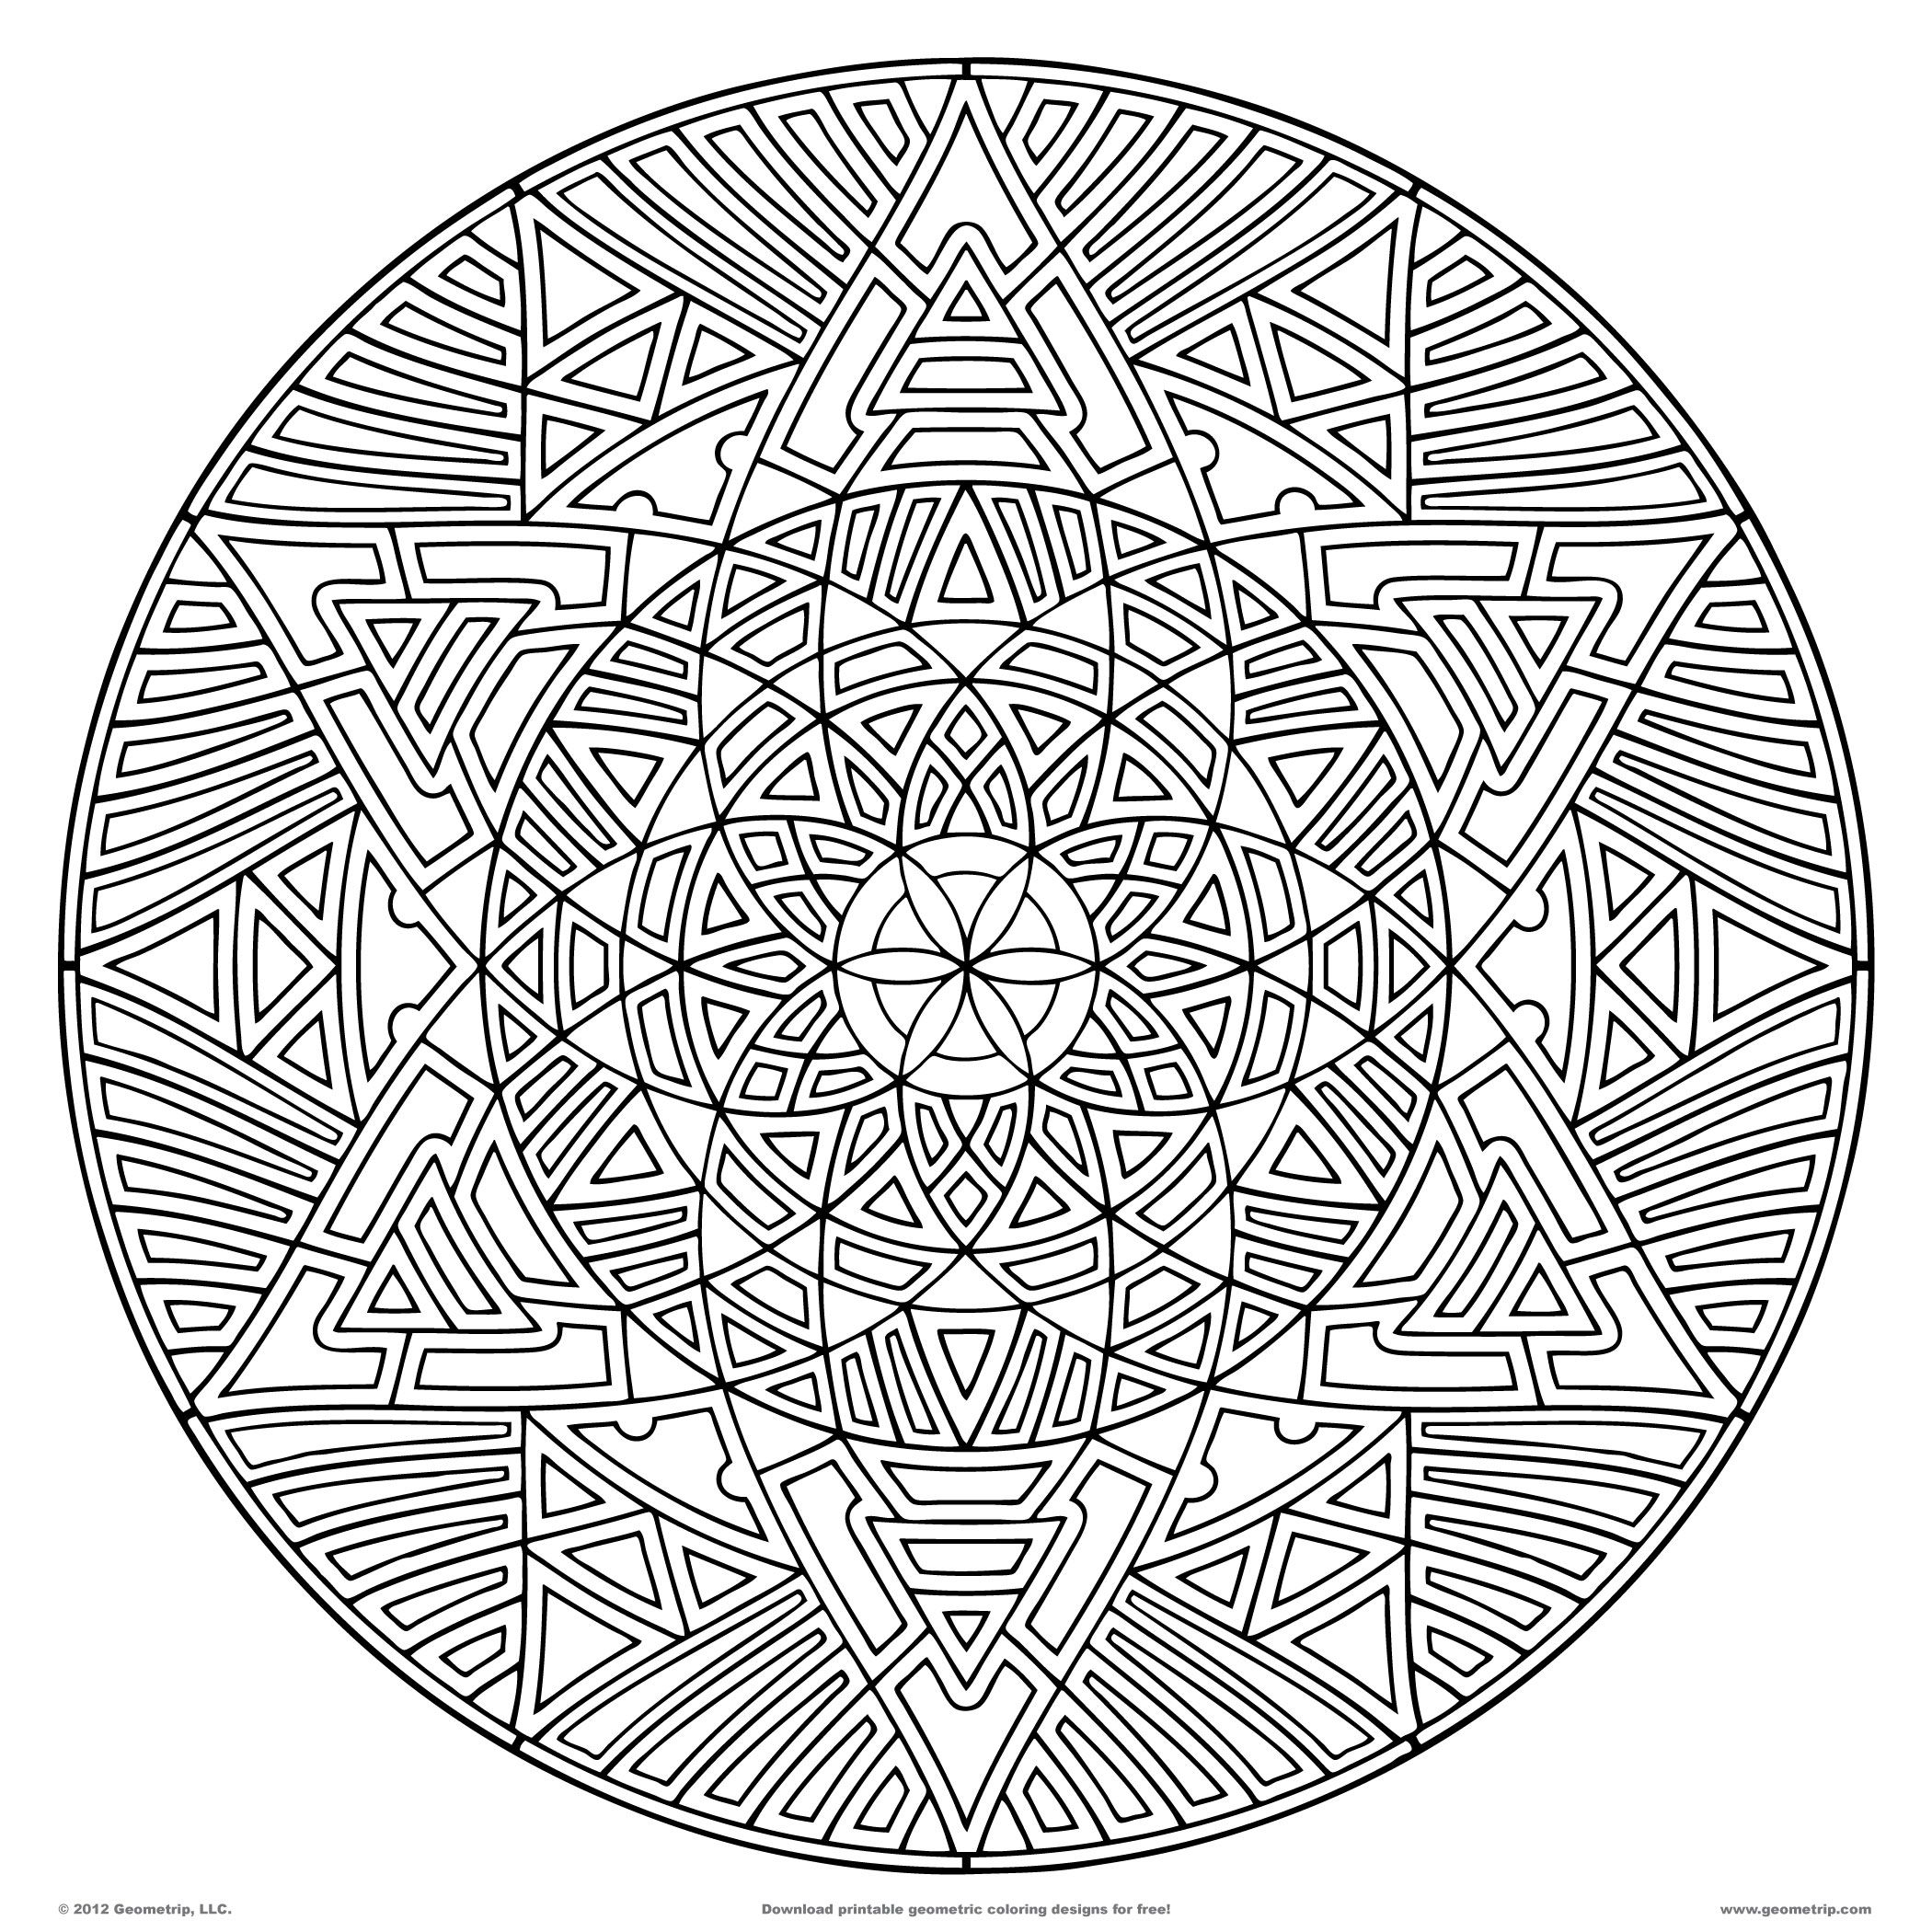 Geometrip Circles 2012 Twelve Twelve Jpg 2 100 2 100 Pixels Geometric Coloring Pages Abstract Coloring Pages Detailed Coloring Pages